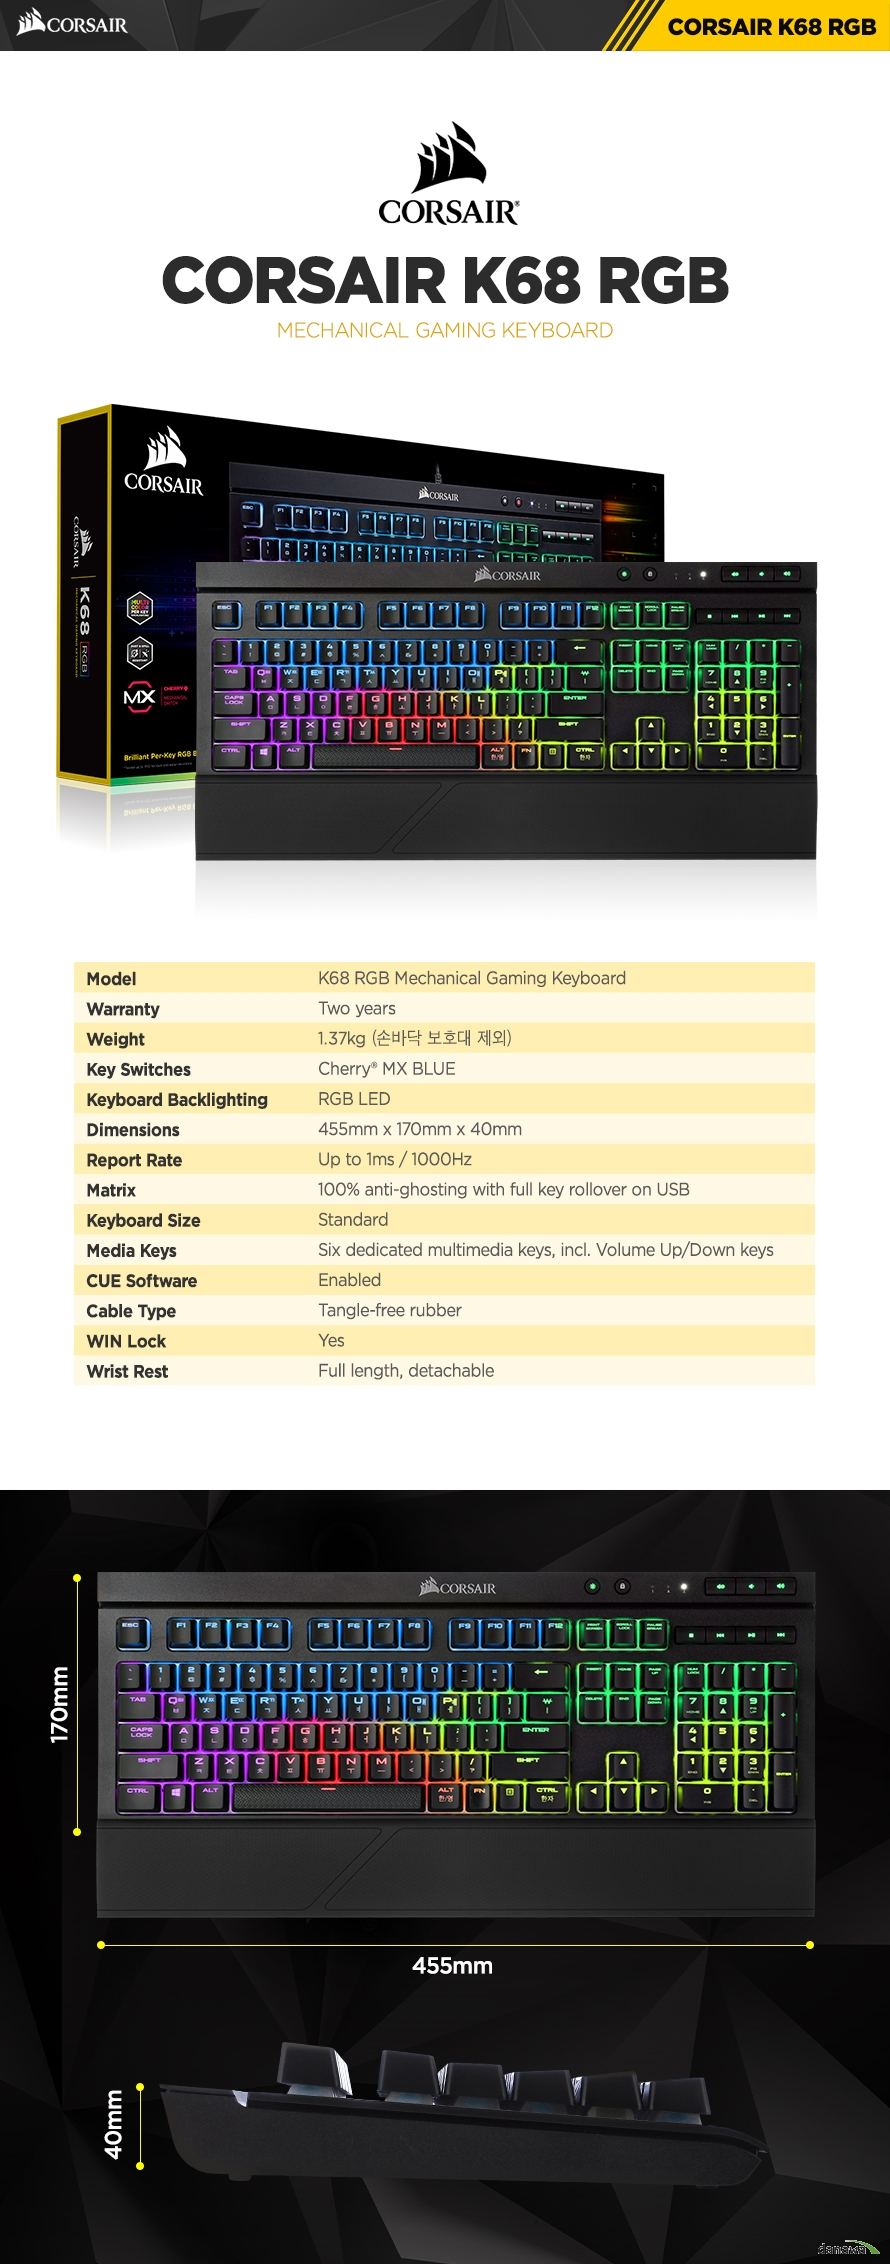 제품 사양Model	K68 RGB  Mechanical Gaming KeyboardWarranty	Two yearsWeight	1.37kgKey Switches	Cherry® MX blueKeyboard Backlighting	RGB LEDDimensions	455mm x 170mm x 40mmReport Rate	Up to 1msMatrix	100% anti-ghosting with full key rollover on USBKeyboard Size	standardMedia Keys	Six dedicated multimedia keys, incl. Volume Up/Down rollerCUE Software	EnabledCable Type	tangle-free rubberWIN Lock	YesWrist Rest	Full length, detachable